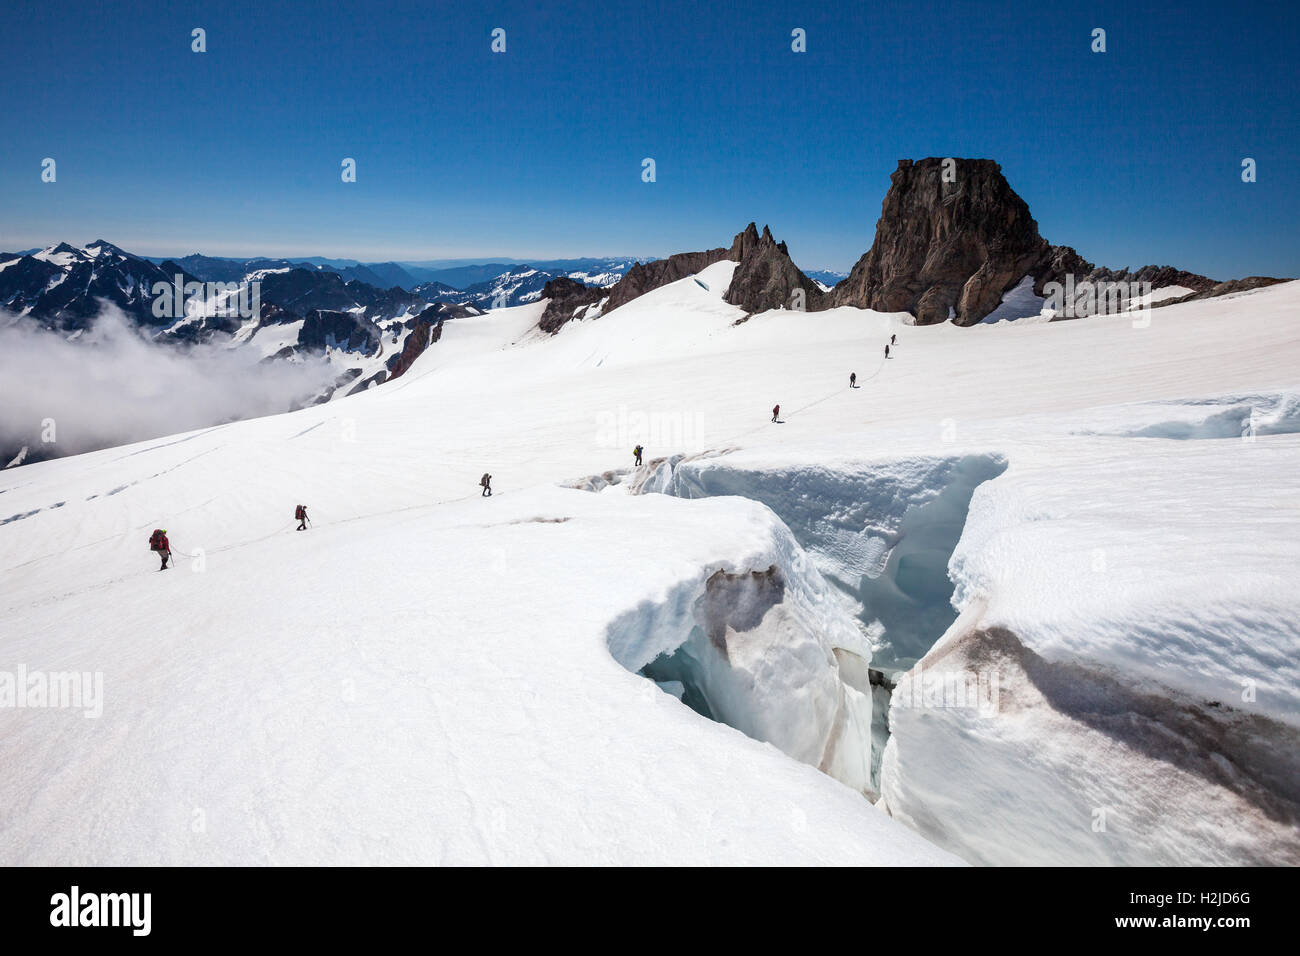 Two rope-teams of mountaineers crossing a crevasse on Glacier Peak in the North Cascades Mountains, Washington State, - Stock Image